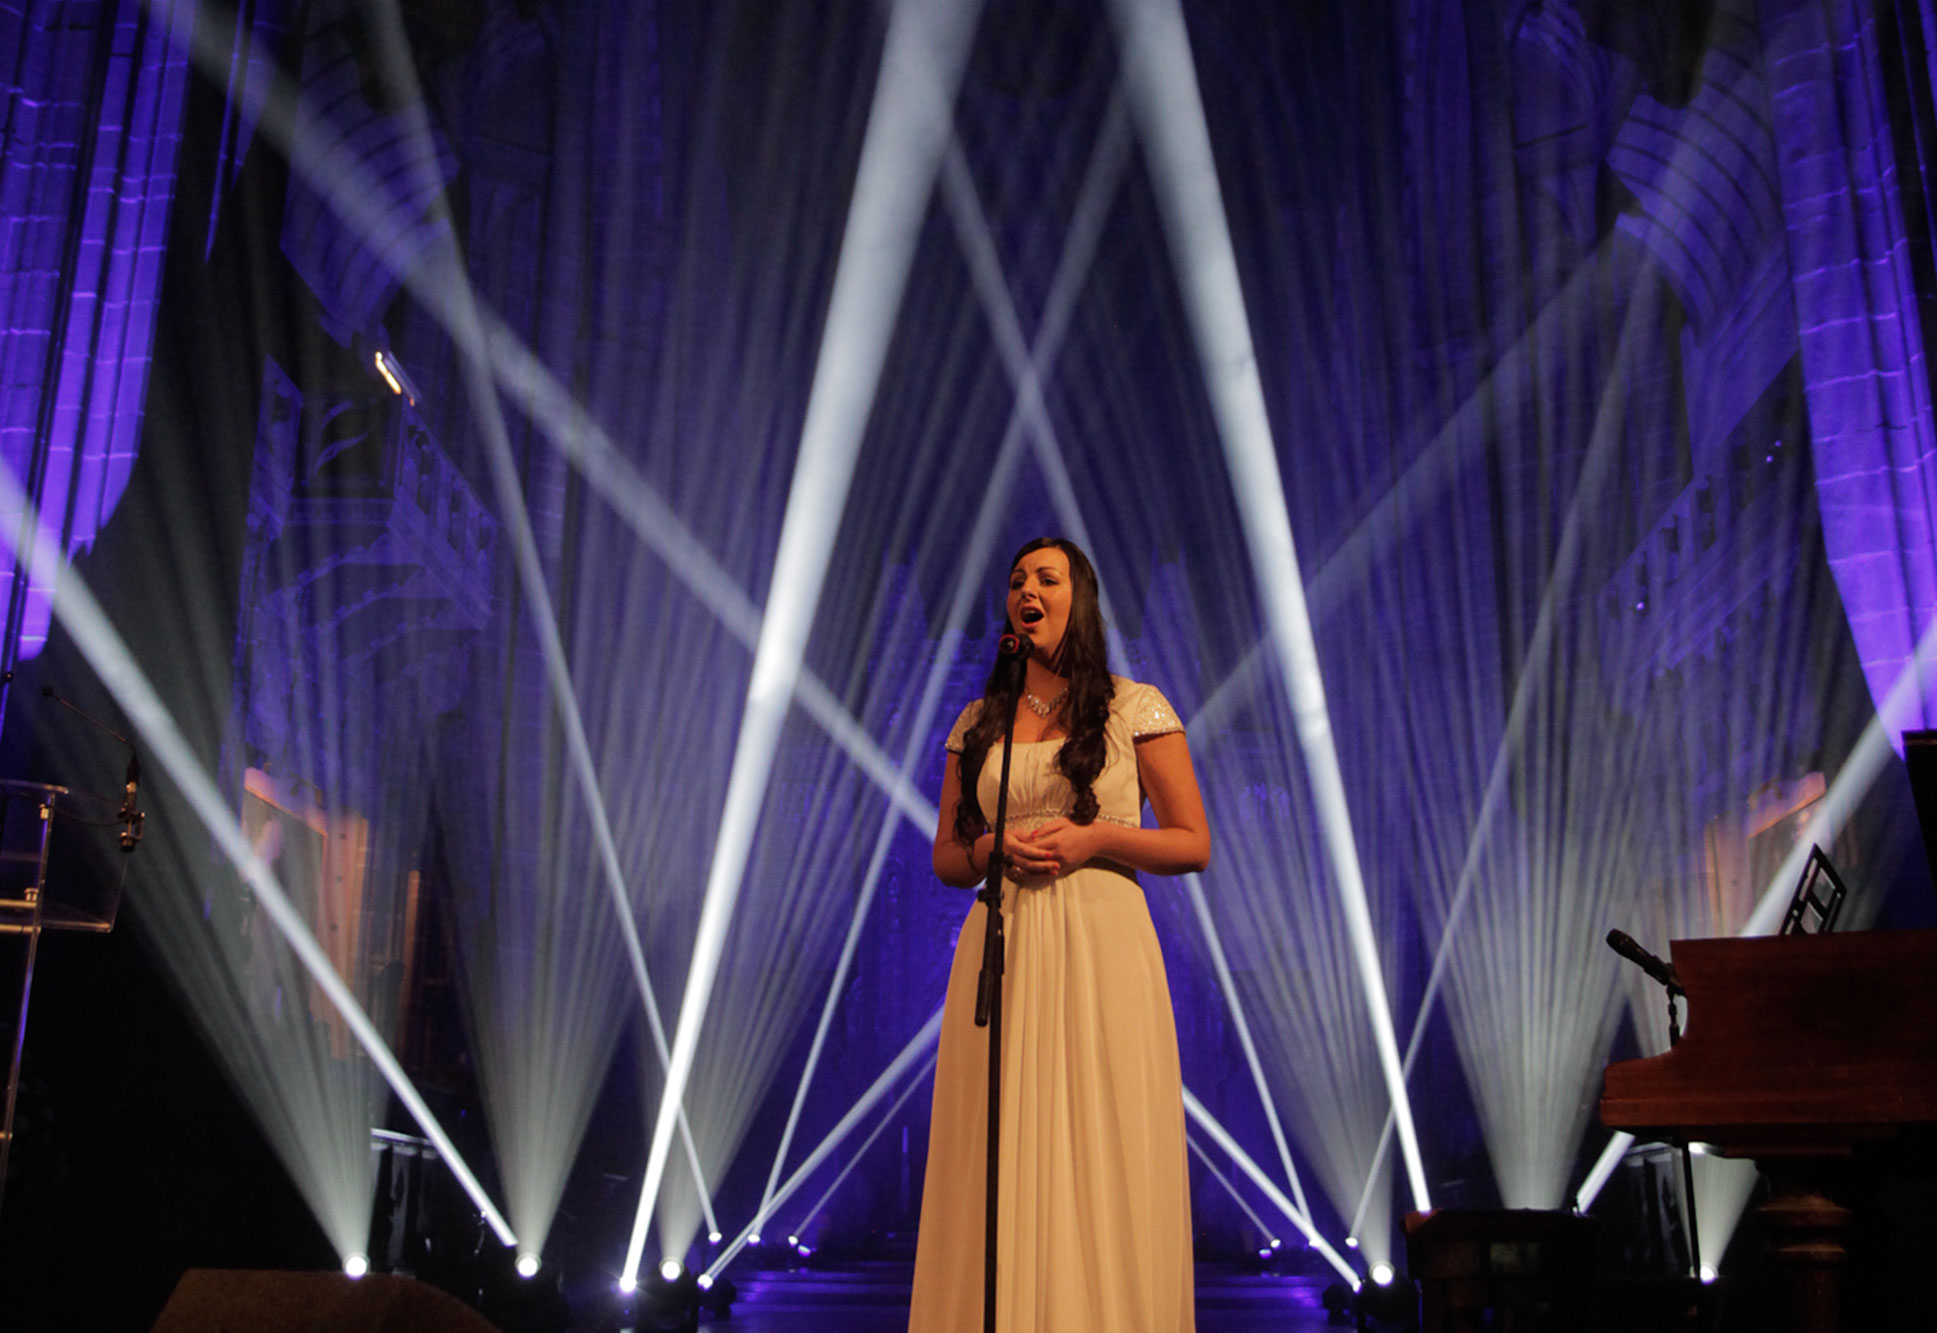 Gala Dinner Lighting & Production at Liverpool Cathedral